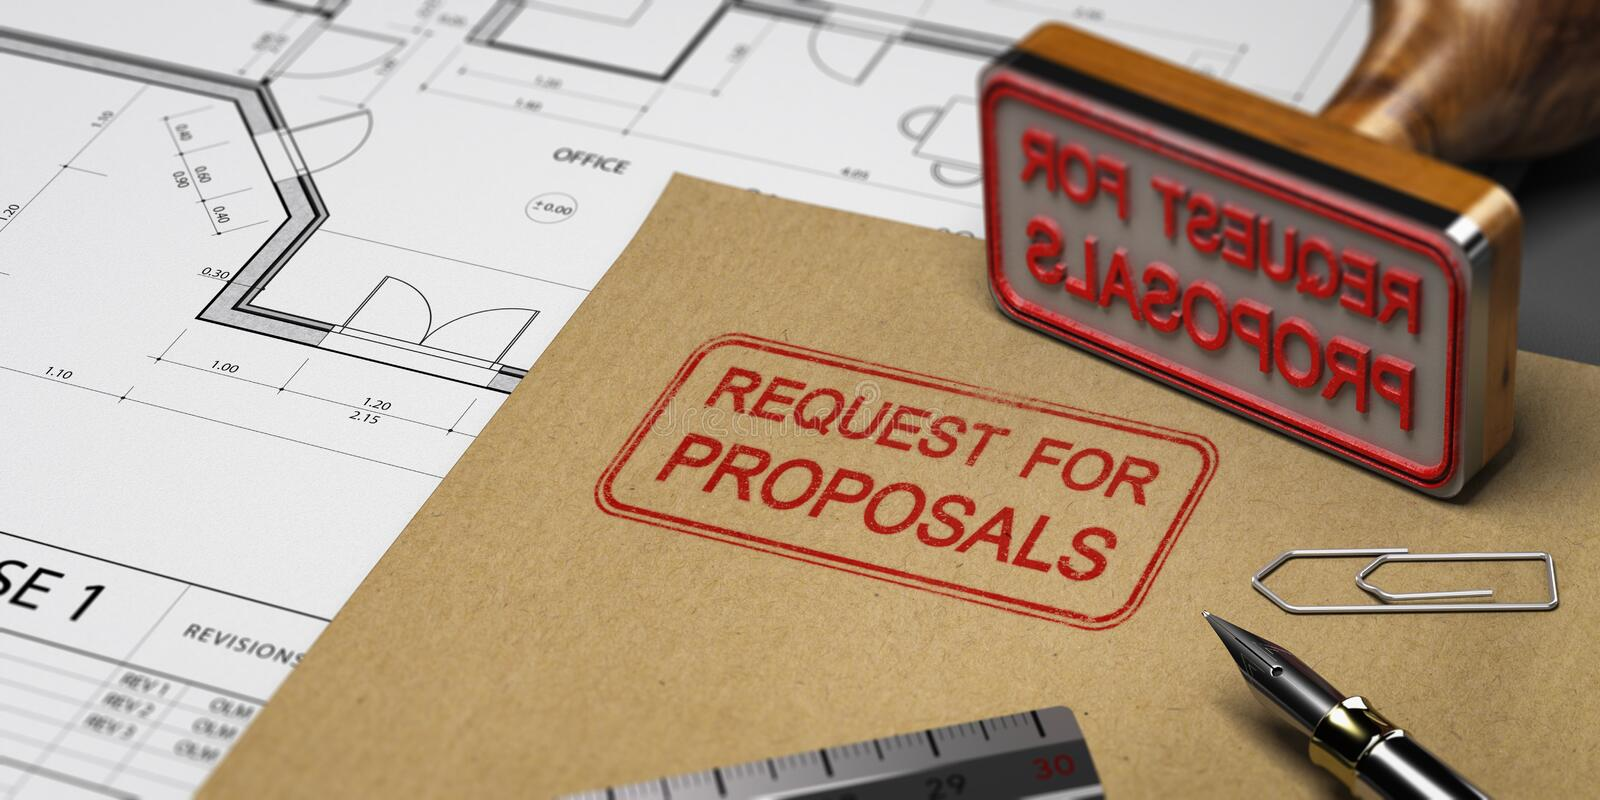 RFP, Request for Proposals royalty free illustration